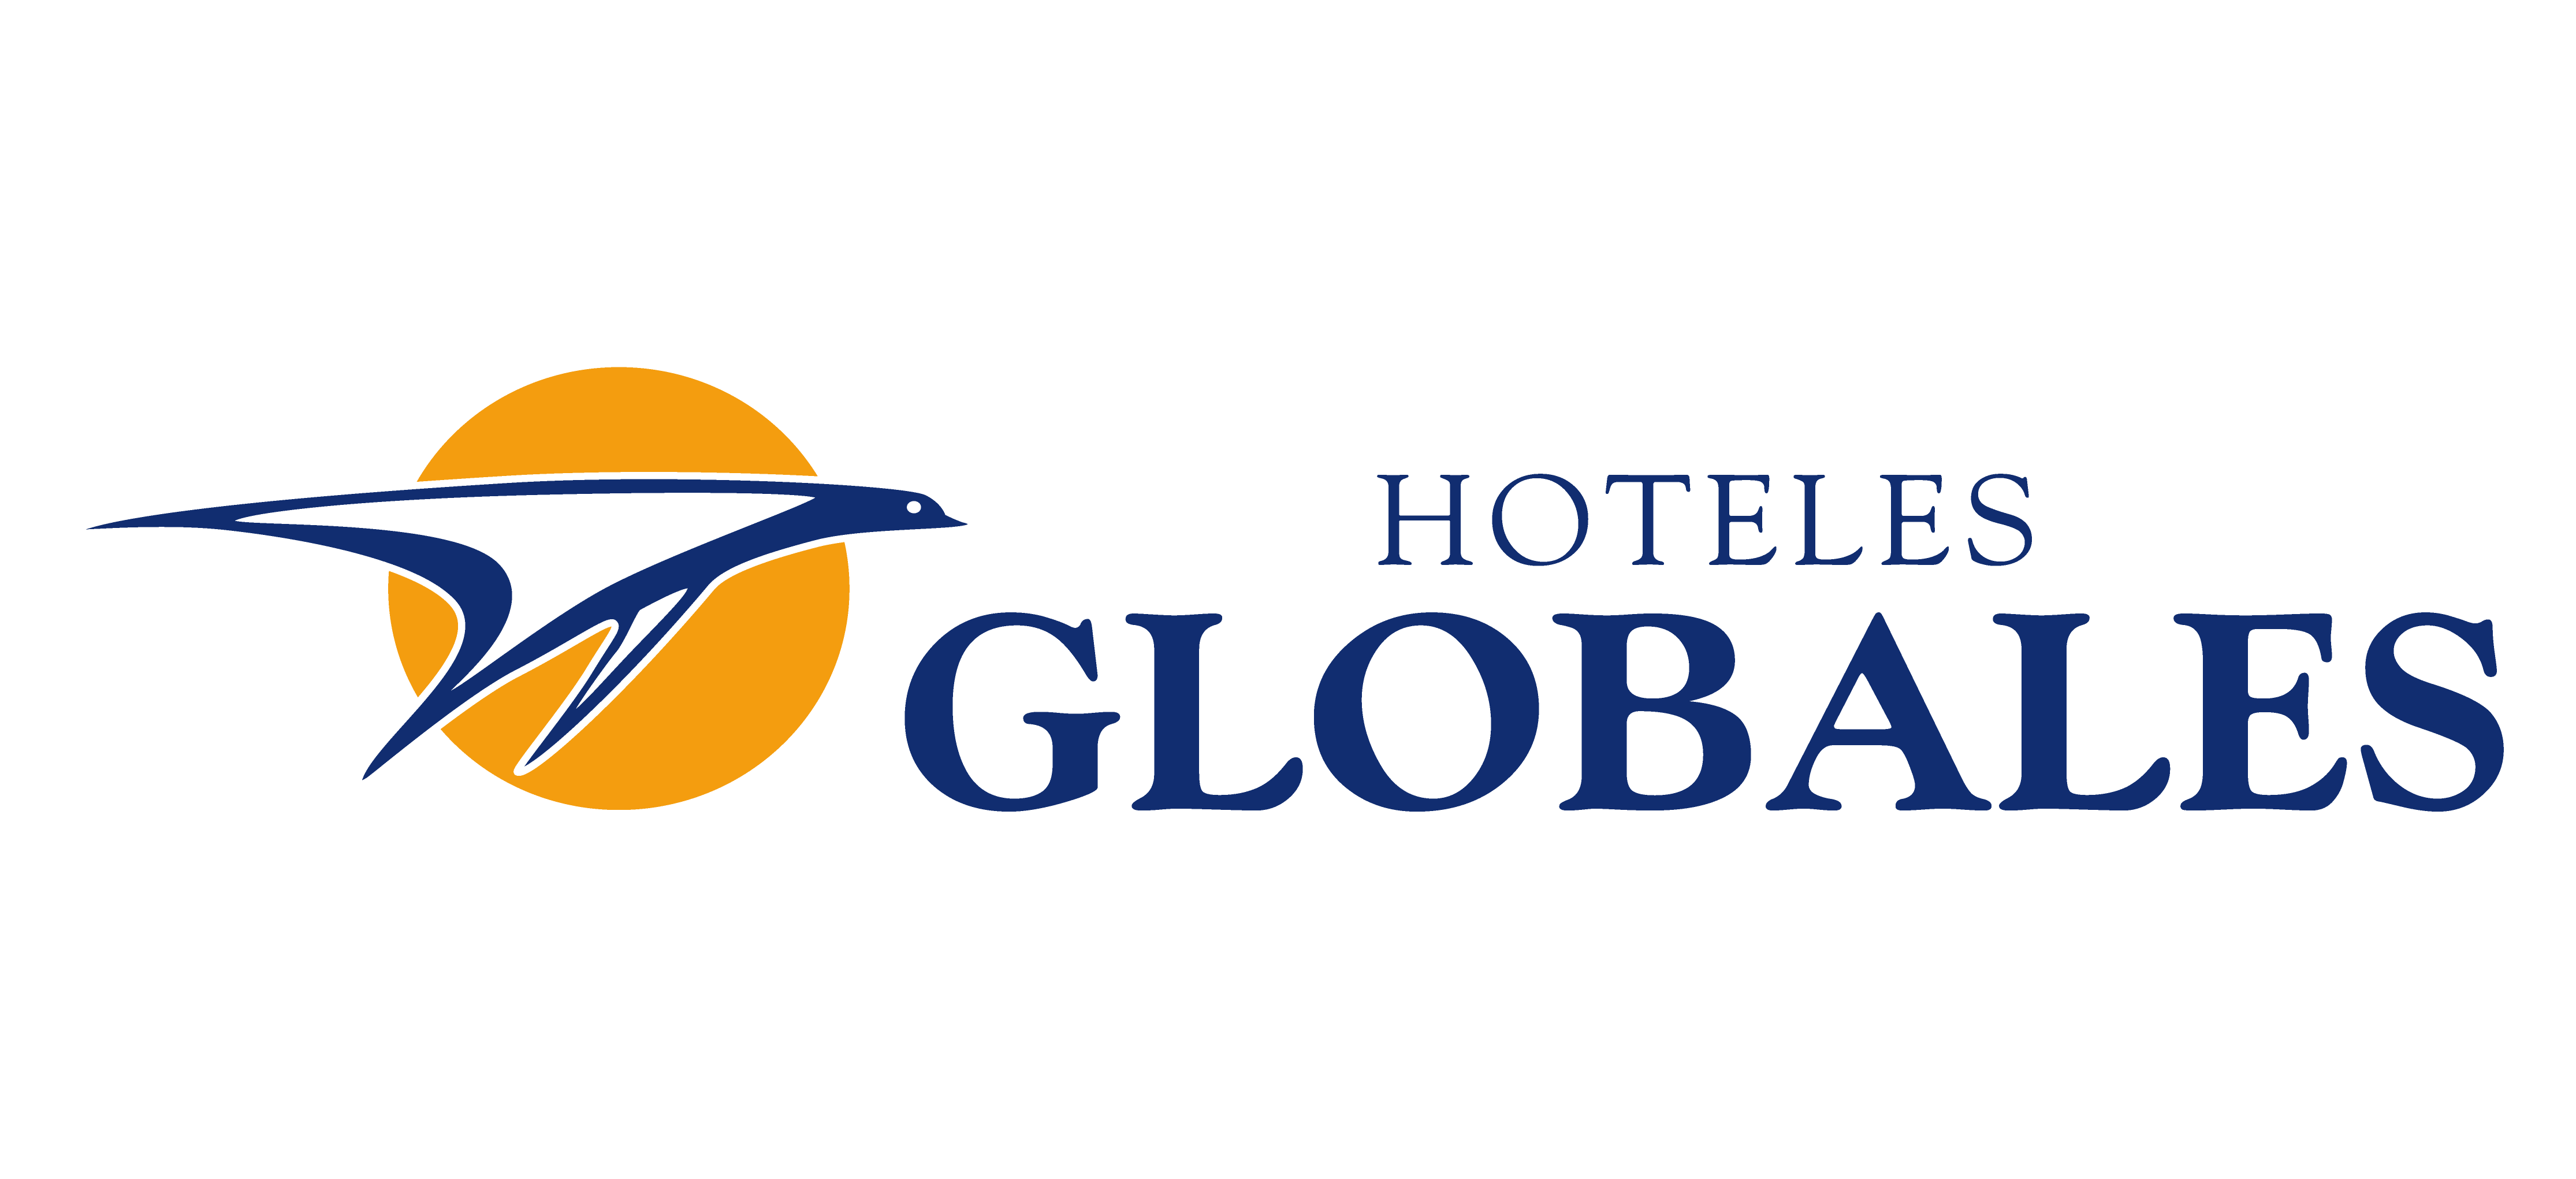 www-hotelesglobales-com